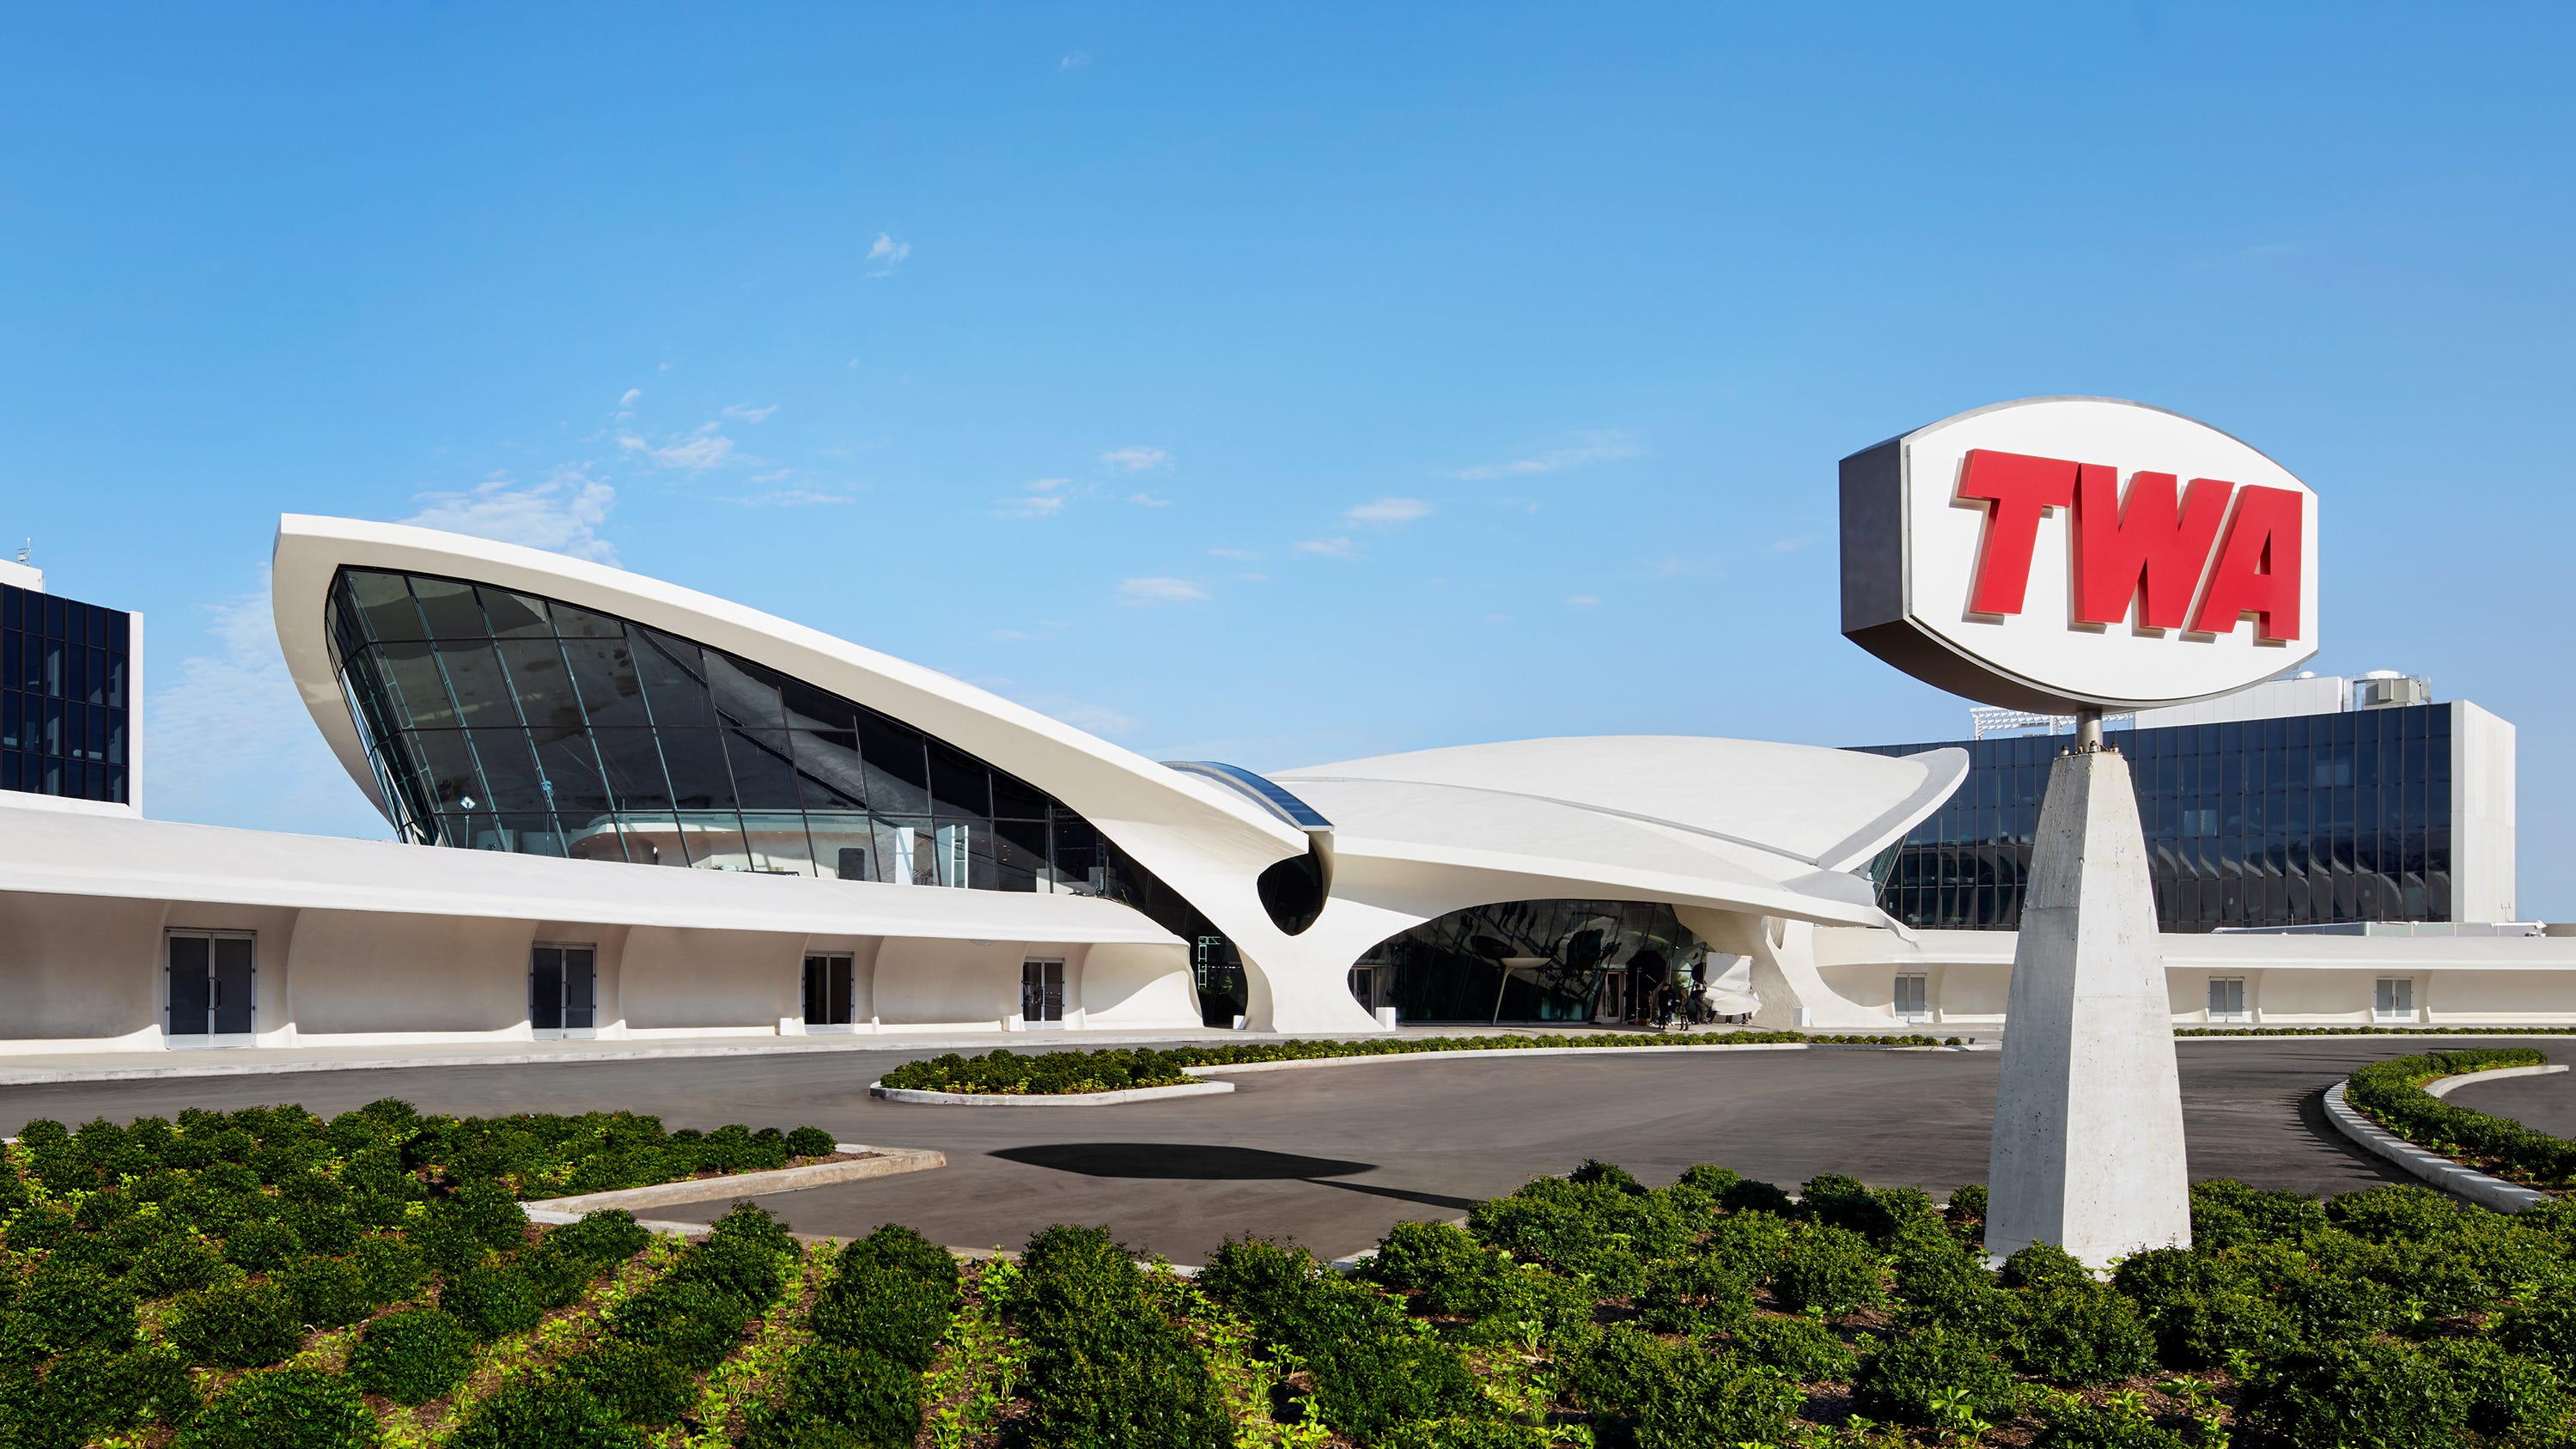 TWA Hotel at JFK Airport: Retro airport property opens in New York